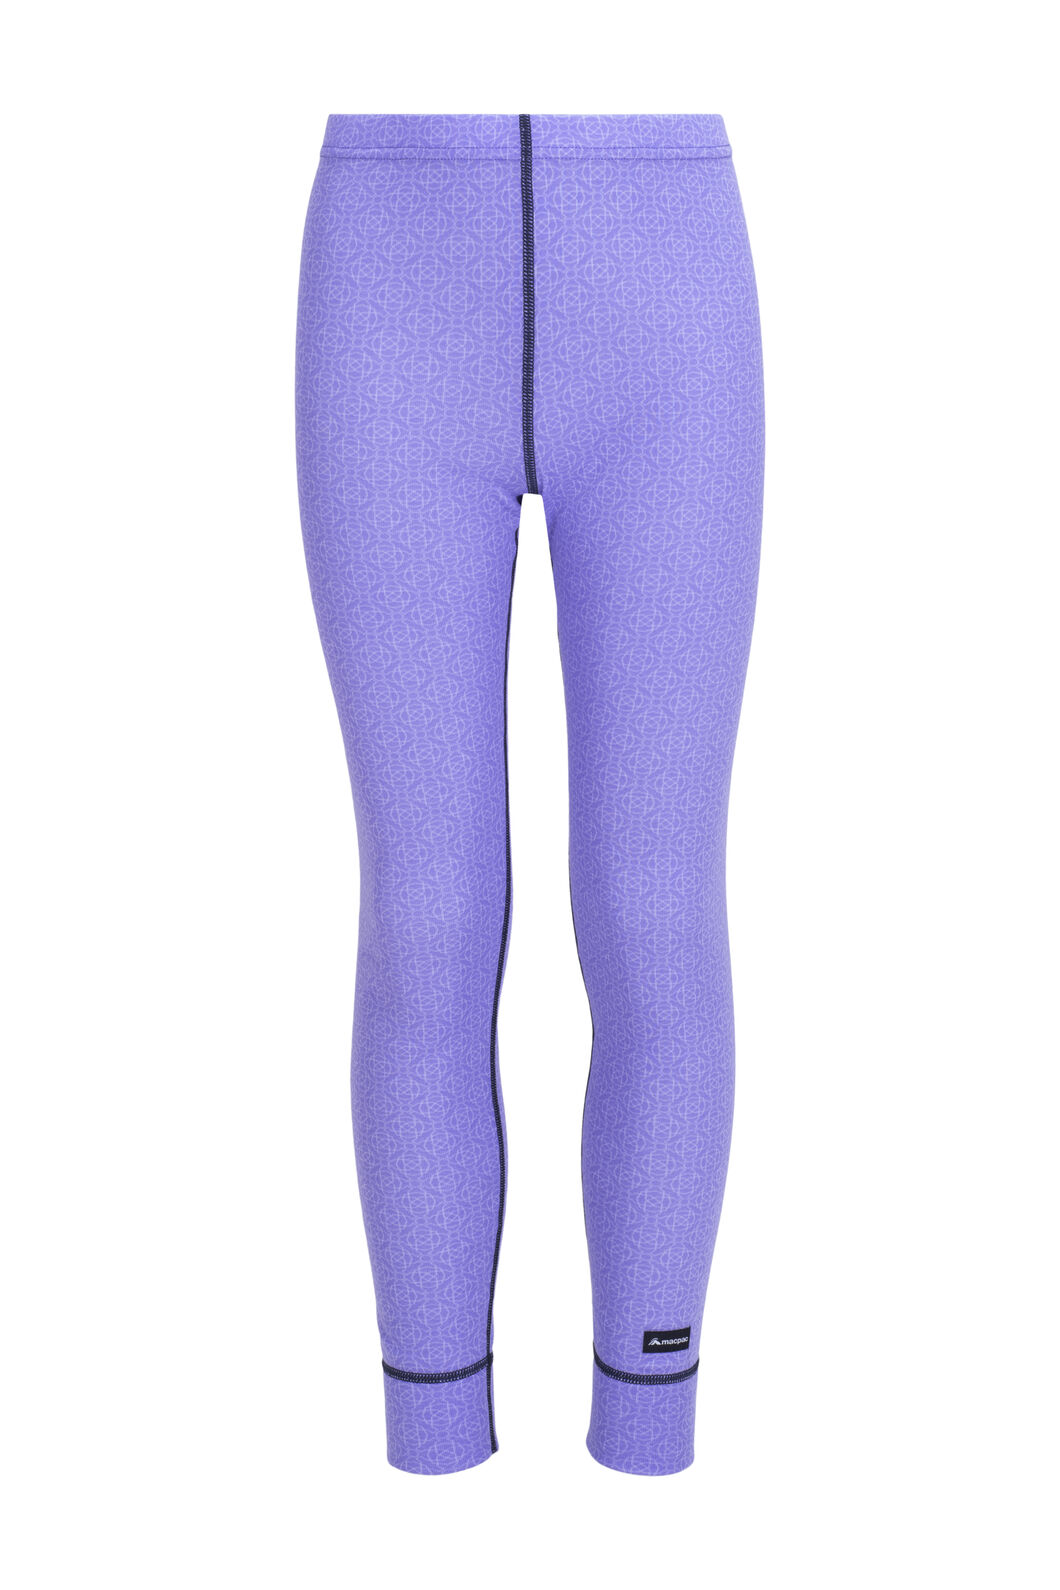 Macpac Geothermal Pants — Kids' (V2), Aster Purple Print, hi-res